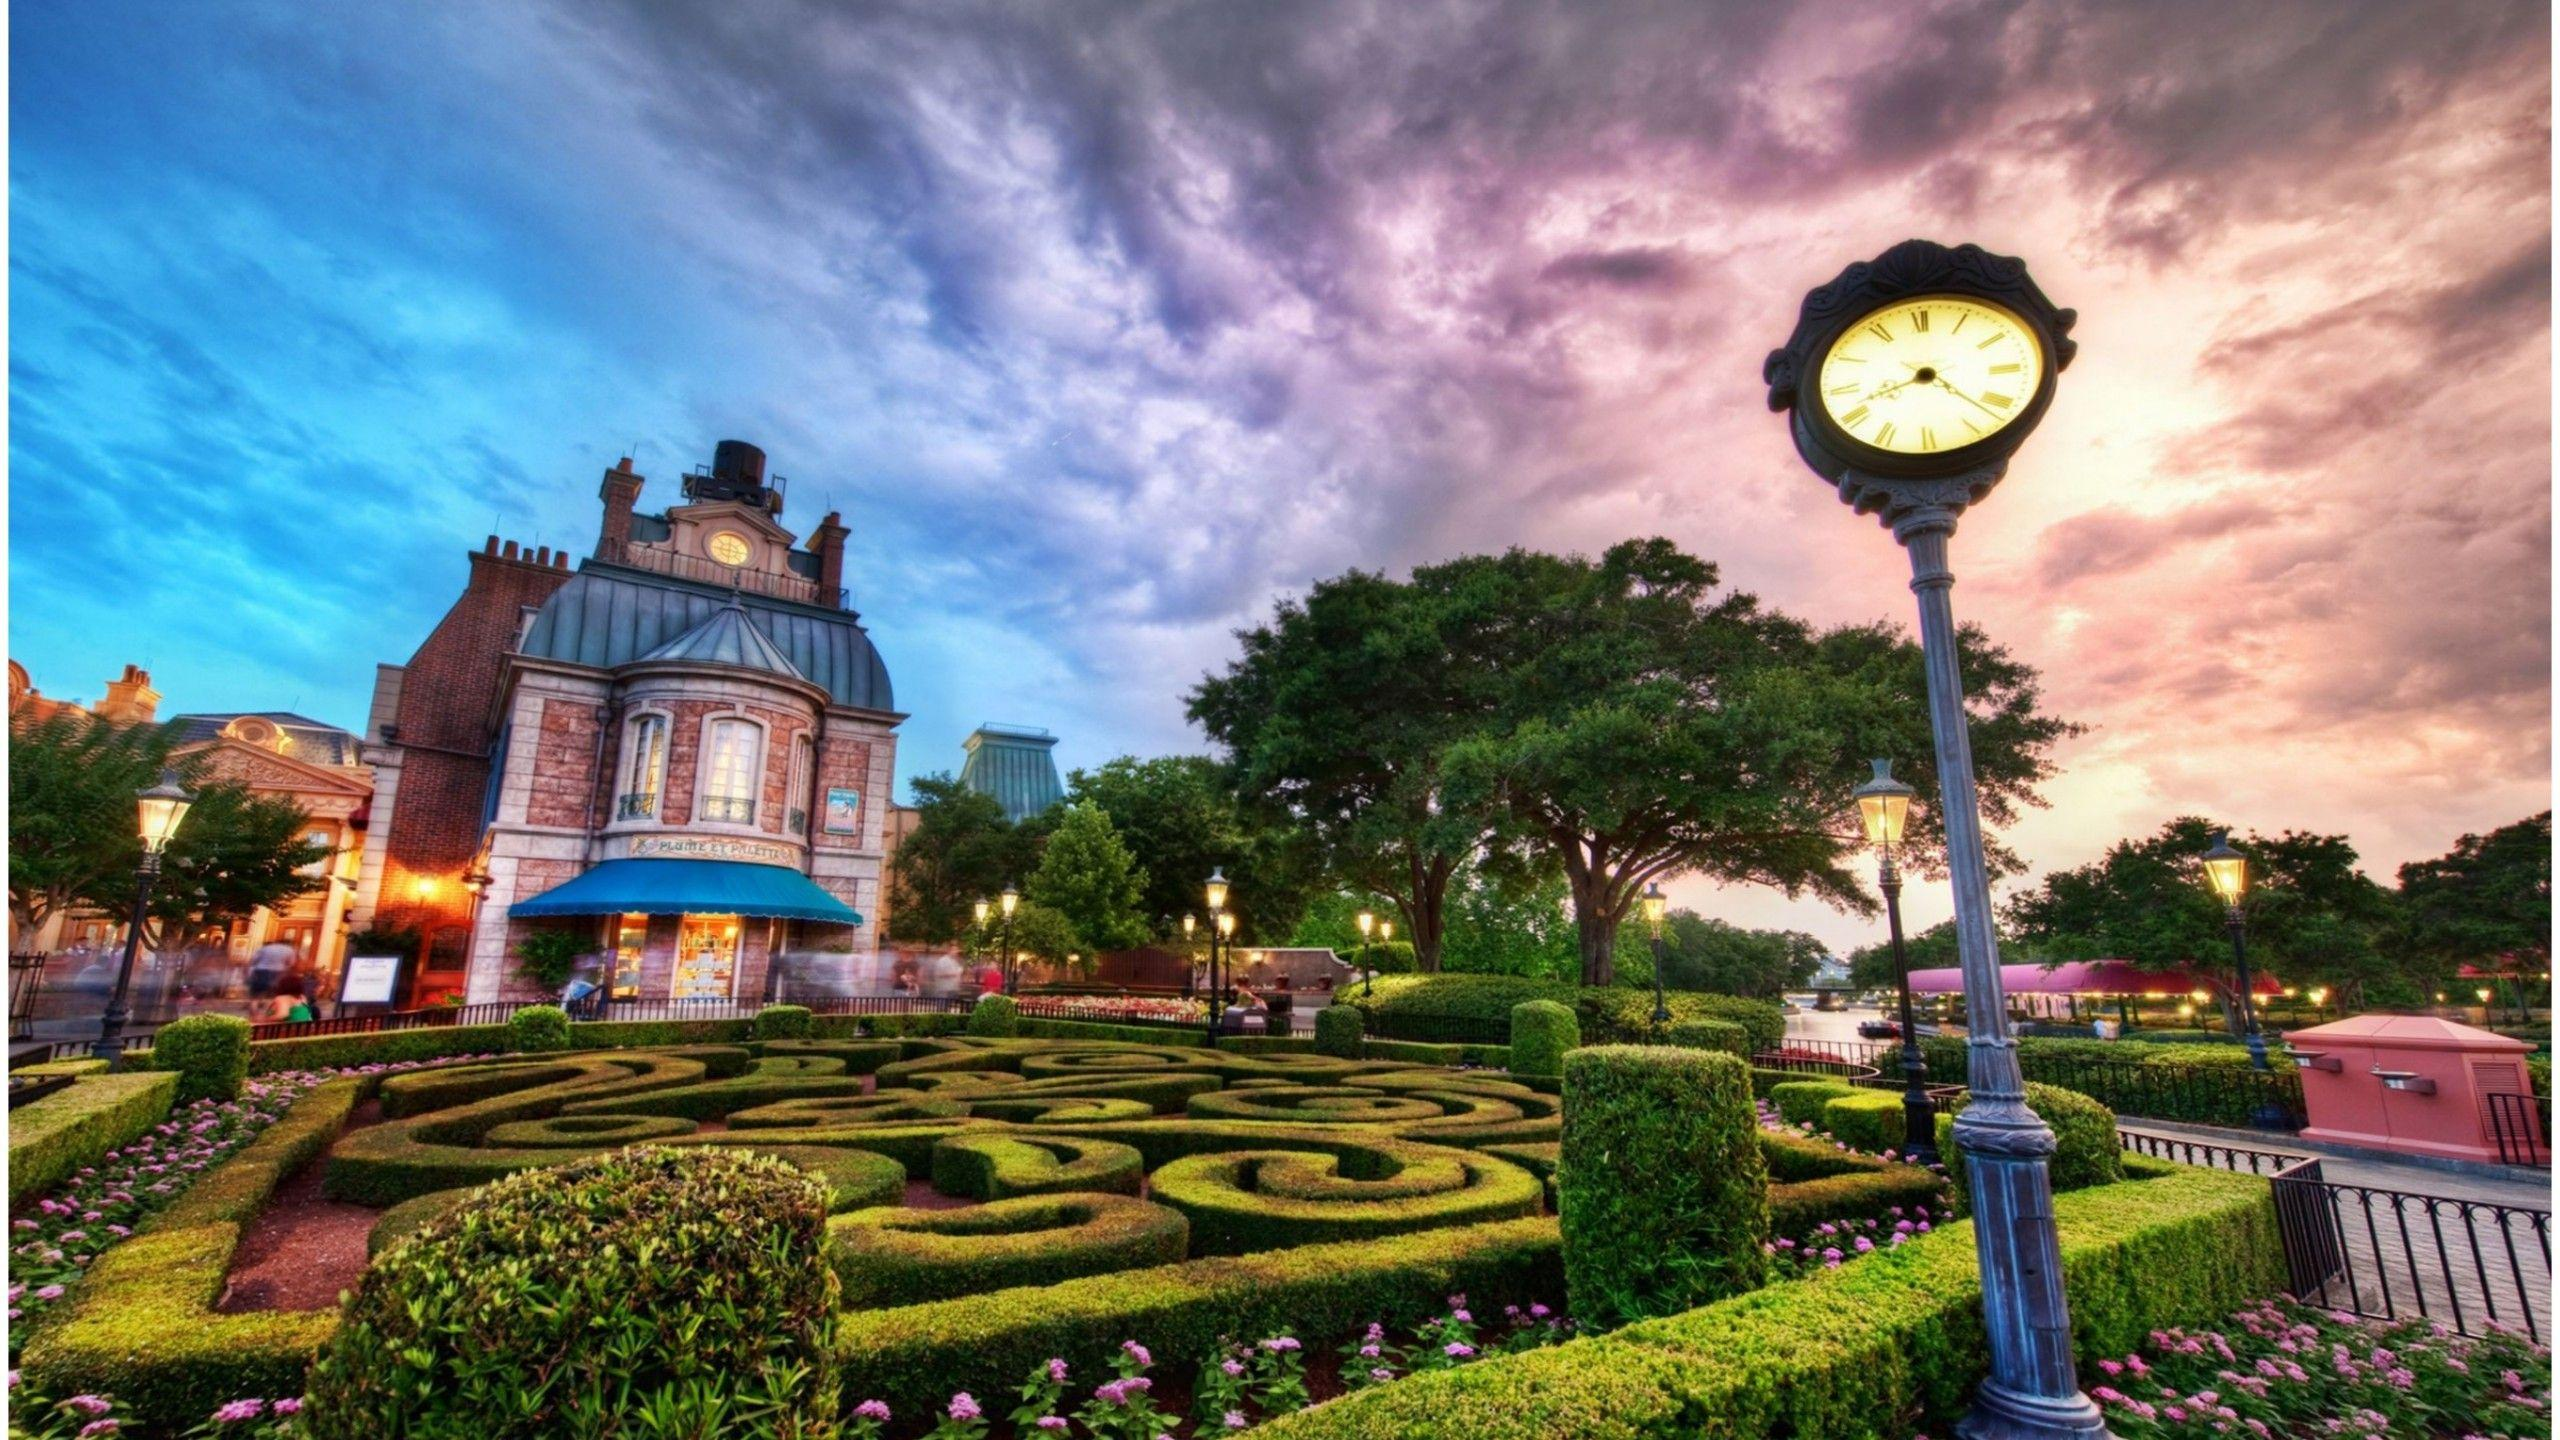 BEAUTIFUL WALT DISNEY WORLD HD WALLPAPER | 9HD Wallpapers